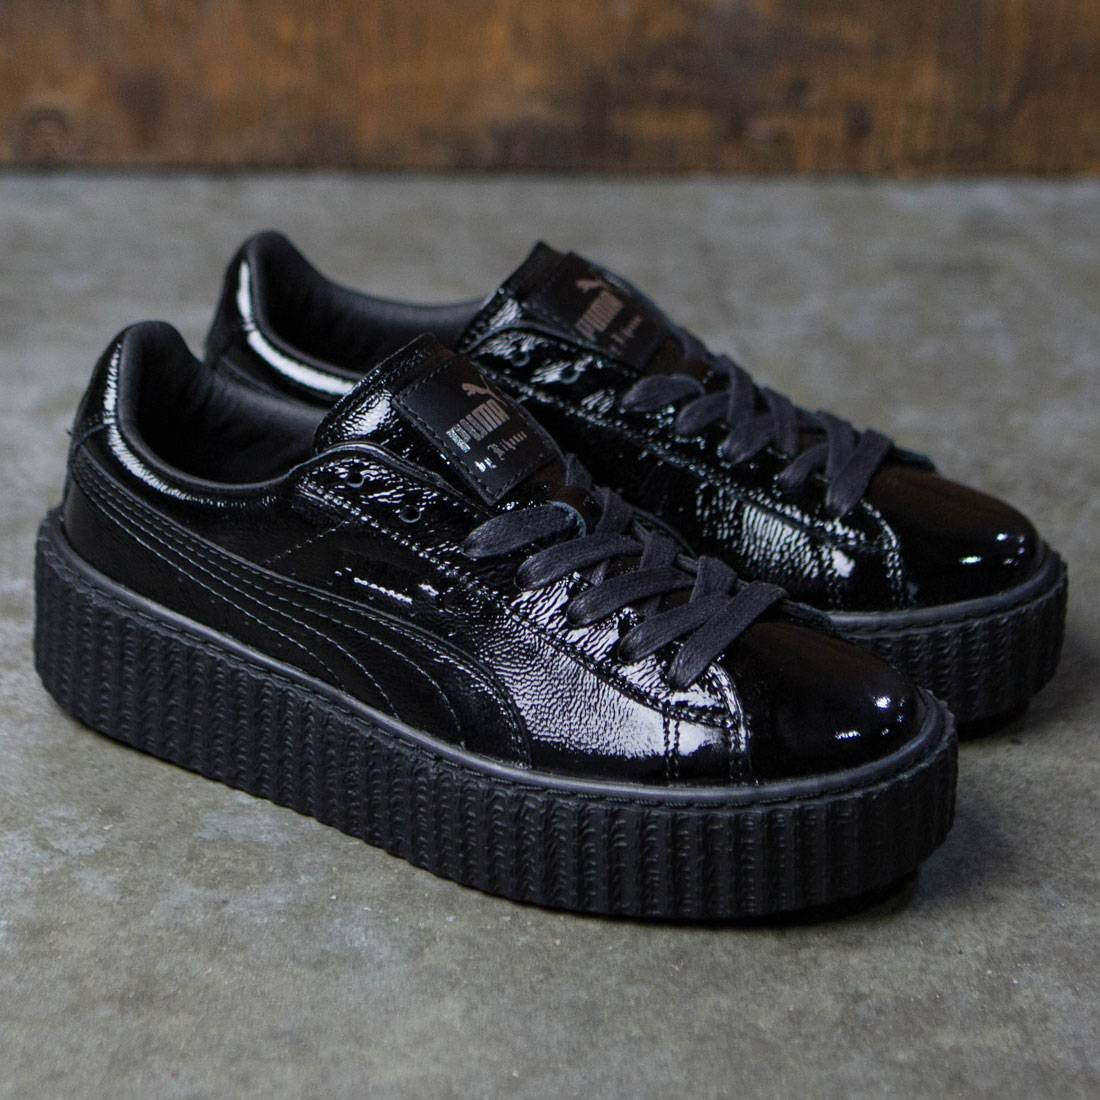 finest selection 231f8 e5451 Puma x Fenty By Rihanna Women Creeper - Cracked Leather (black)